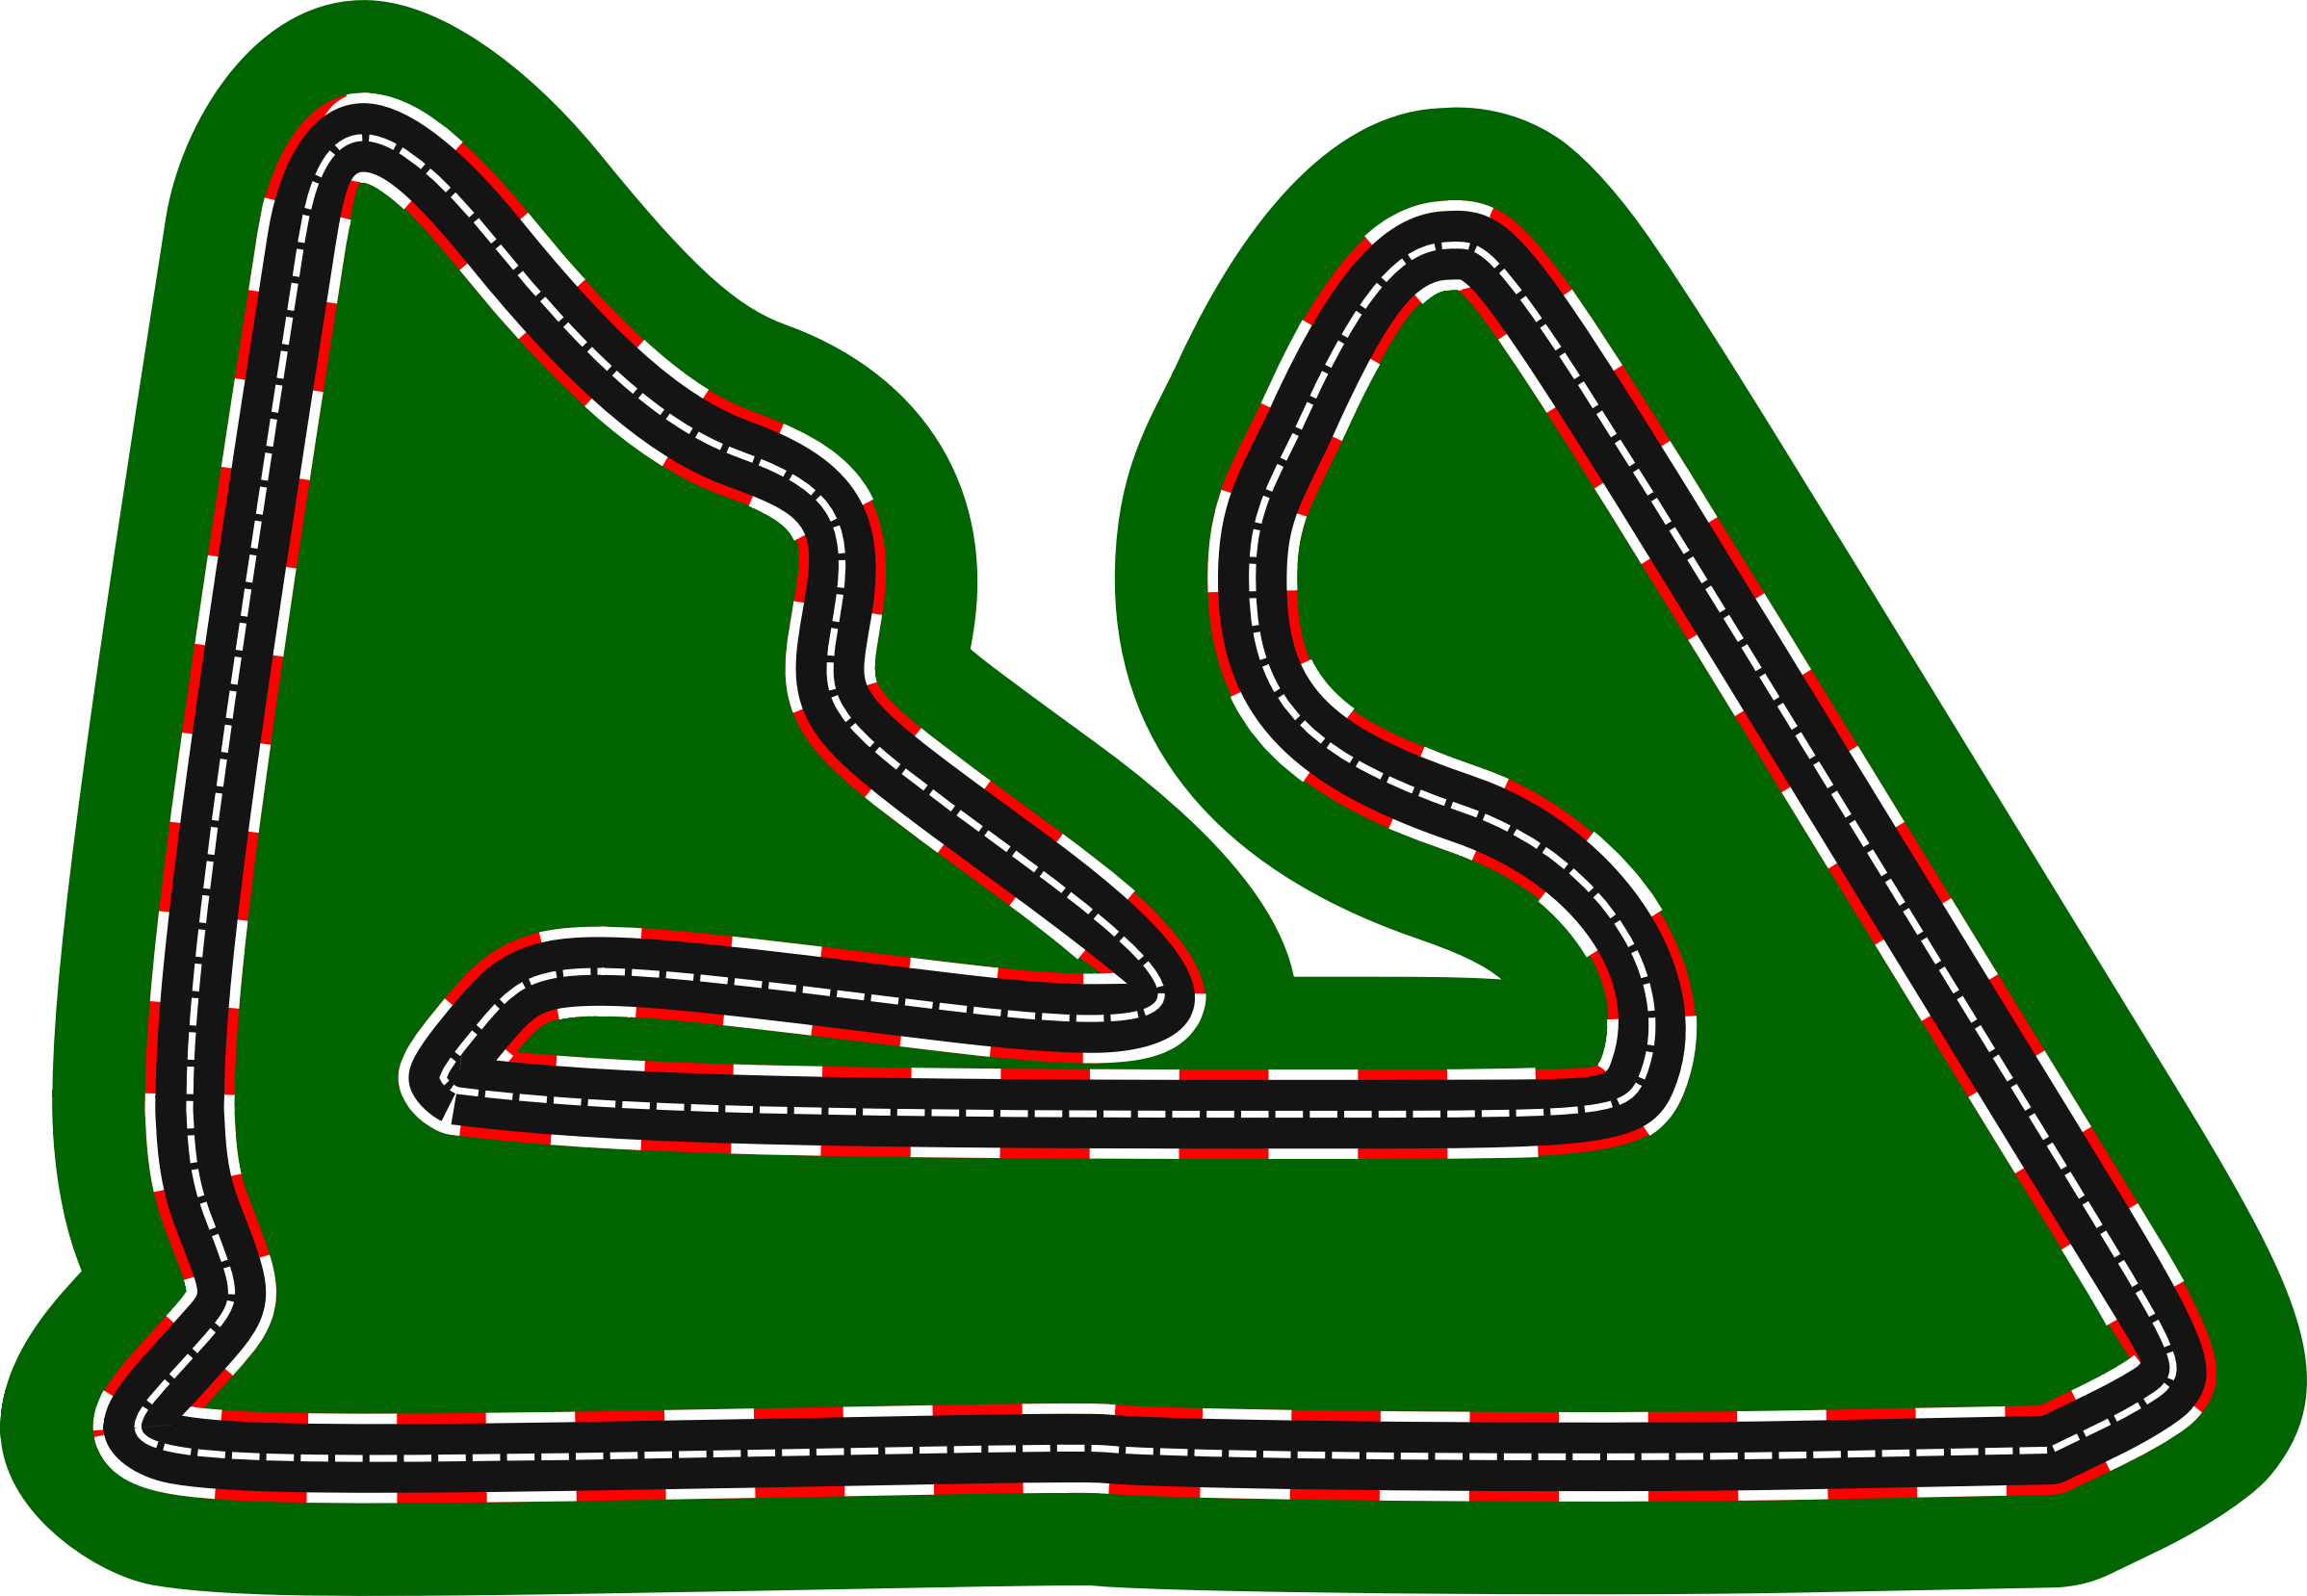 Remix of f circuits. Race clipart racecourse